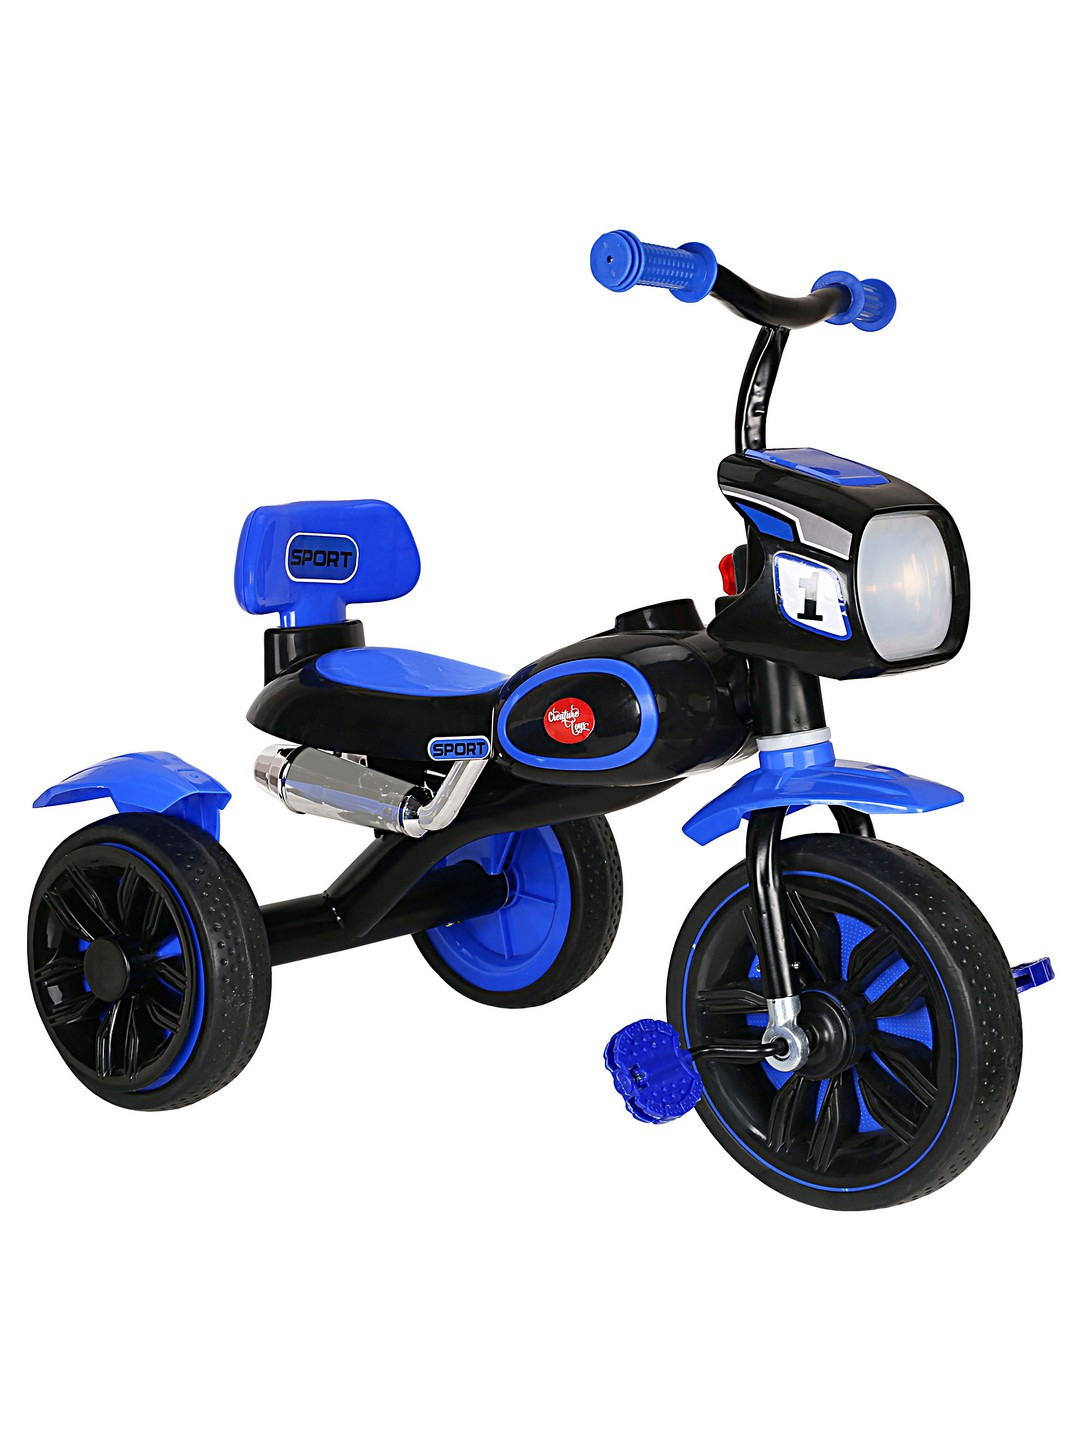 CREATURE | Creature Blue Harley Tricycle Ride-On Cars Toy Vehicle for Kids